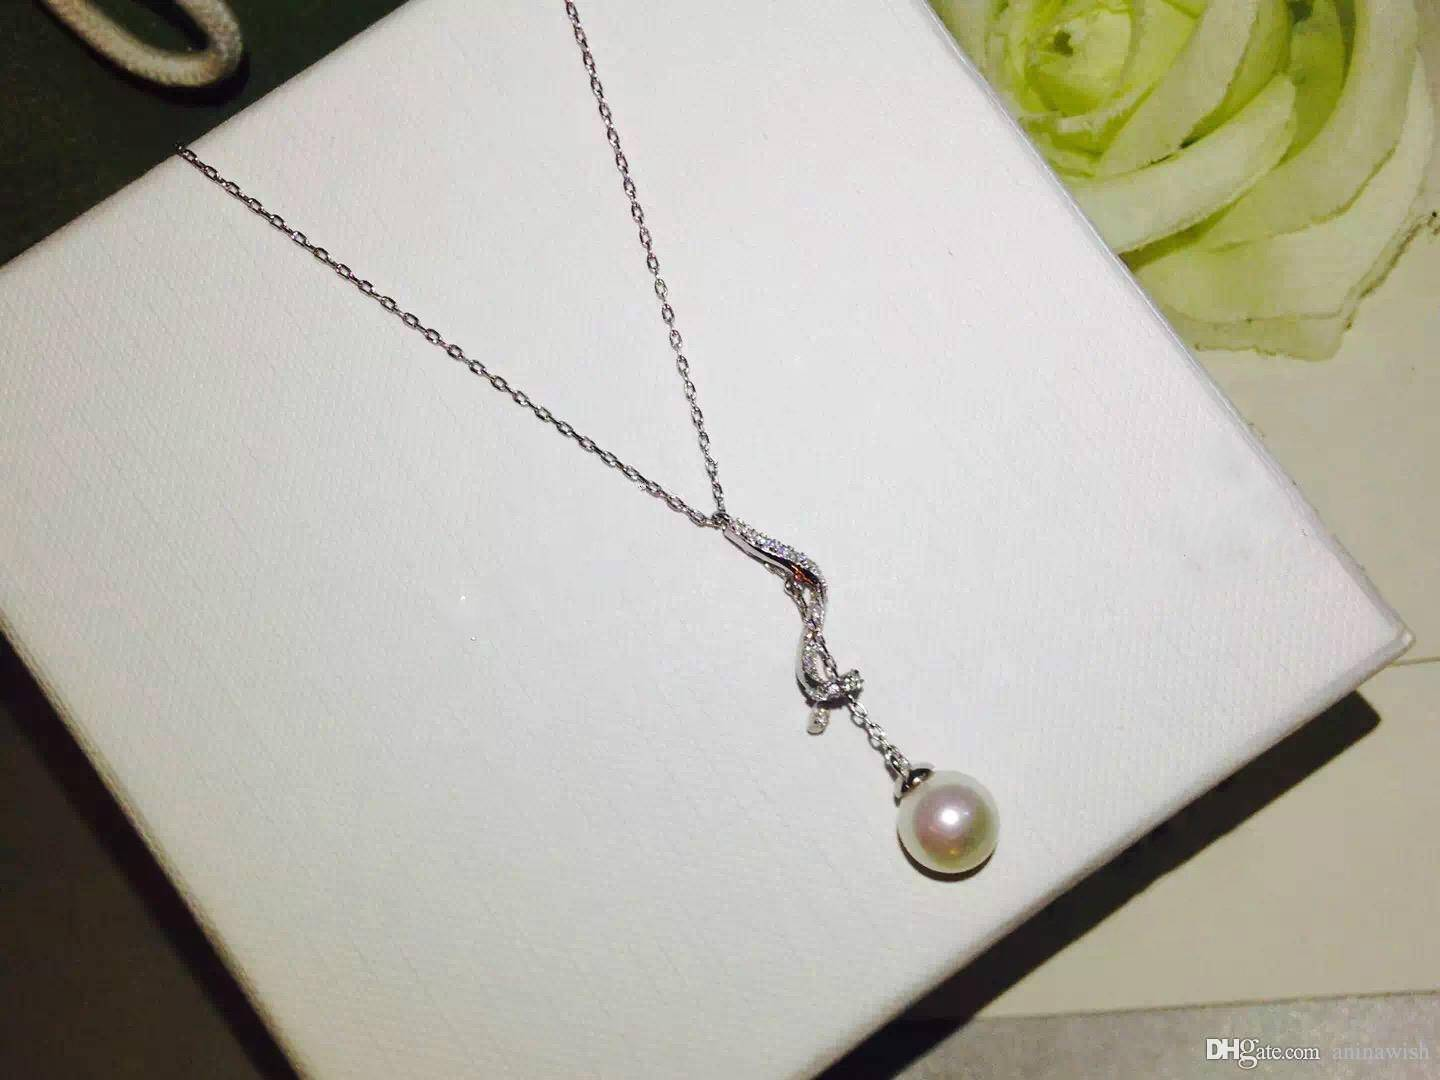 NEFFLY New arrival top quality fashion S925 platinum plated brass Classy Pearl Necklaces women penda